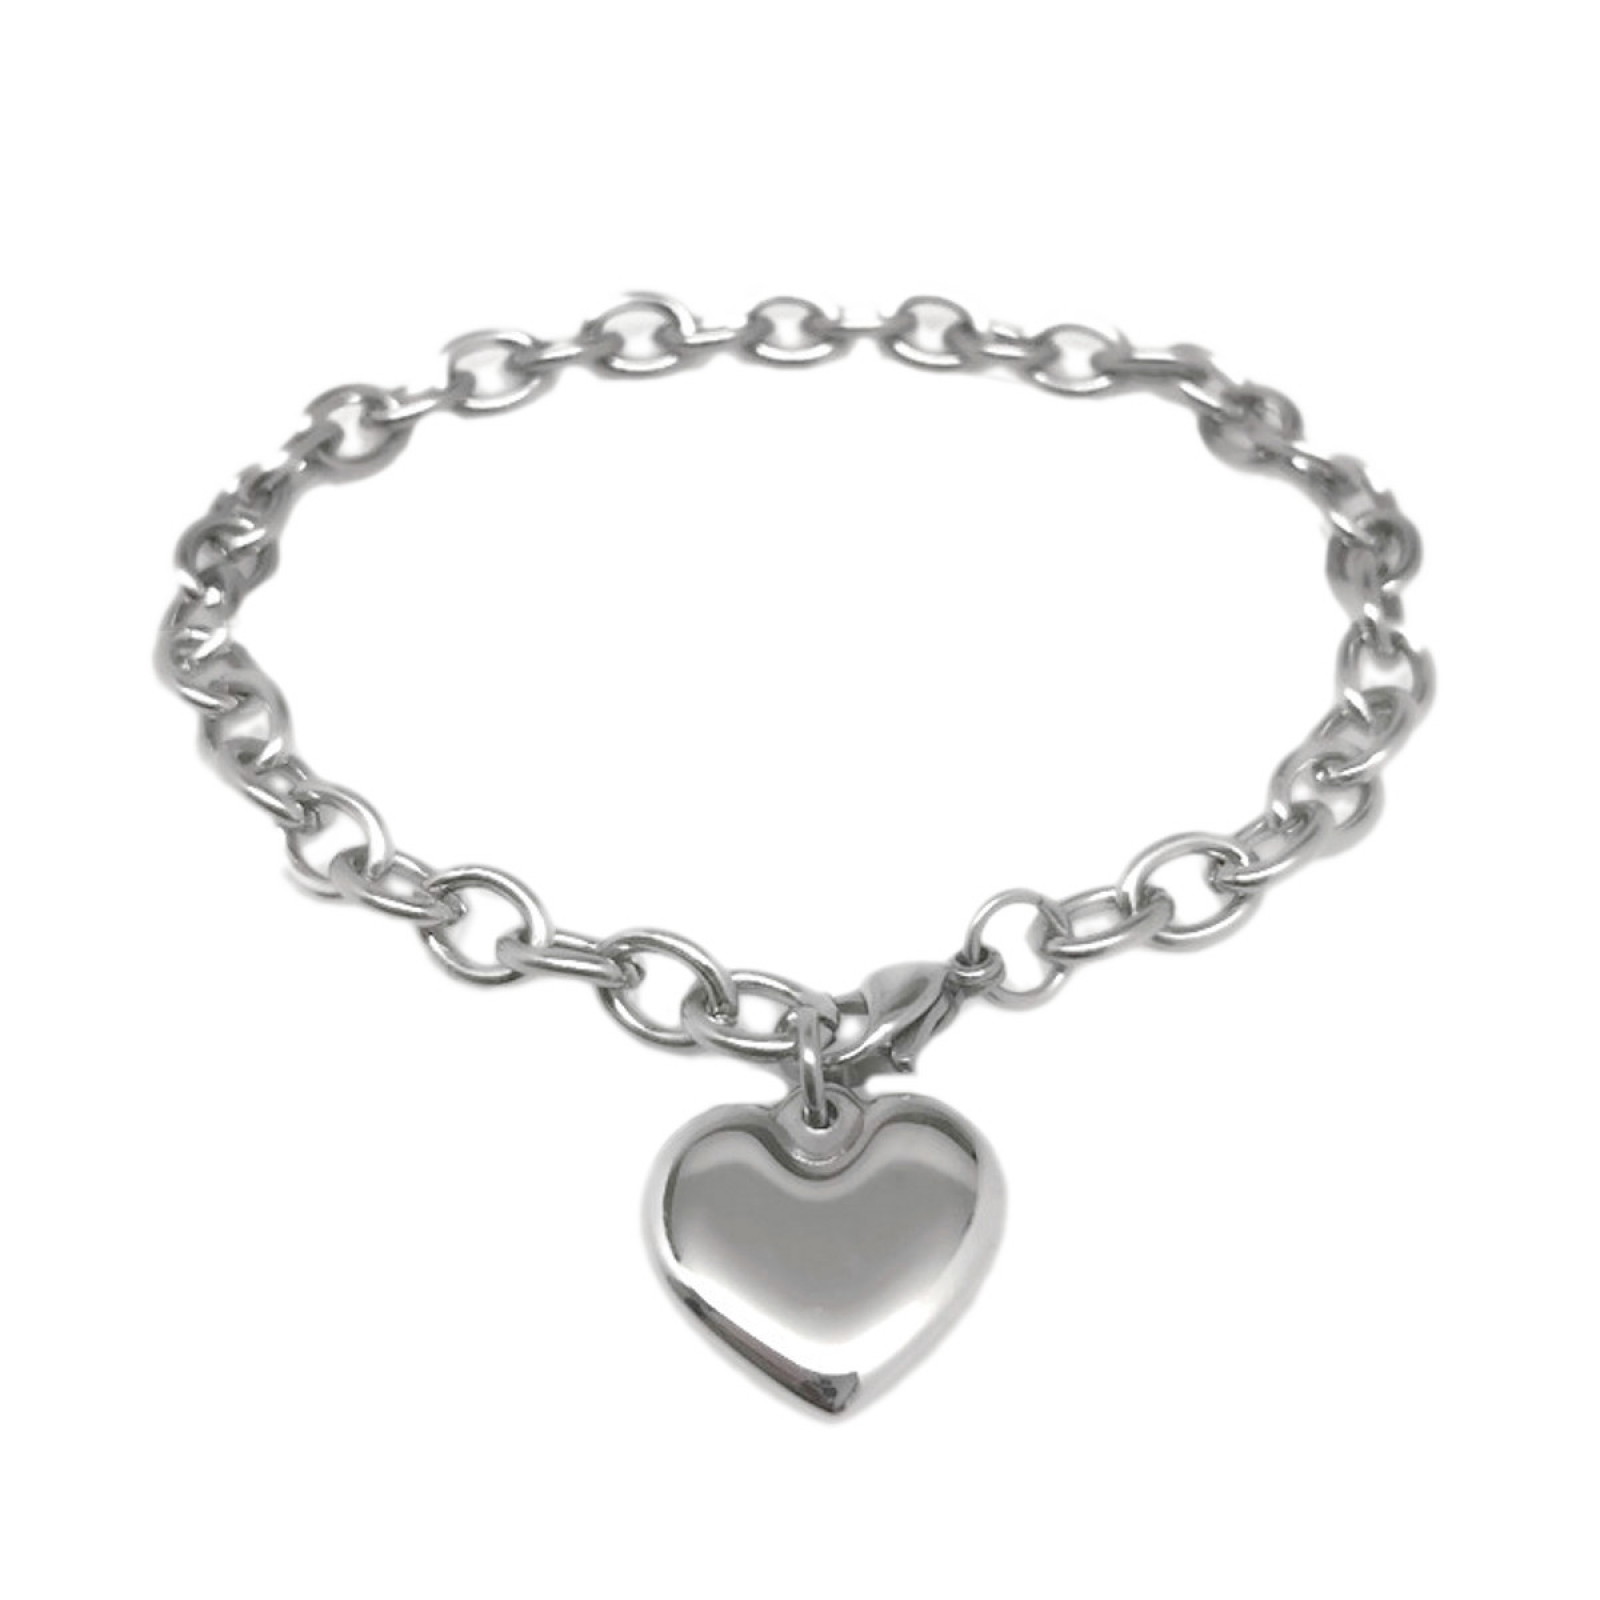 Silver Heart Charm Love Promise Committment Jewelry For Fiend Wife